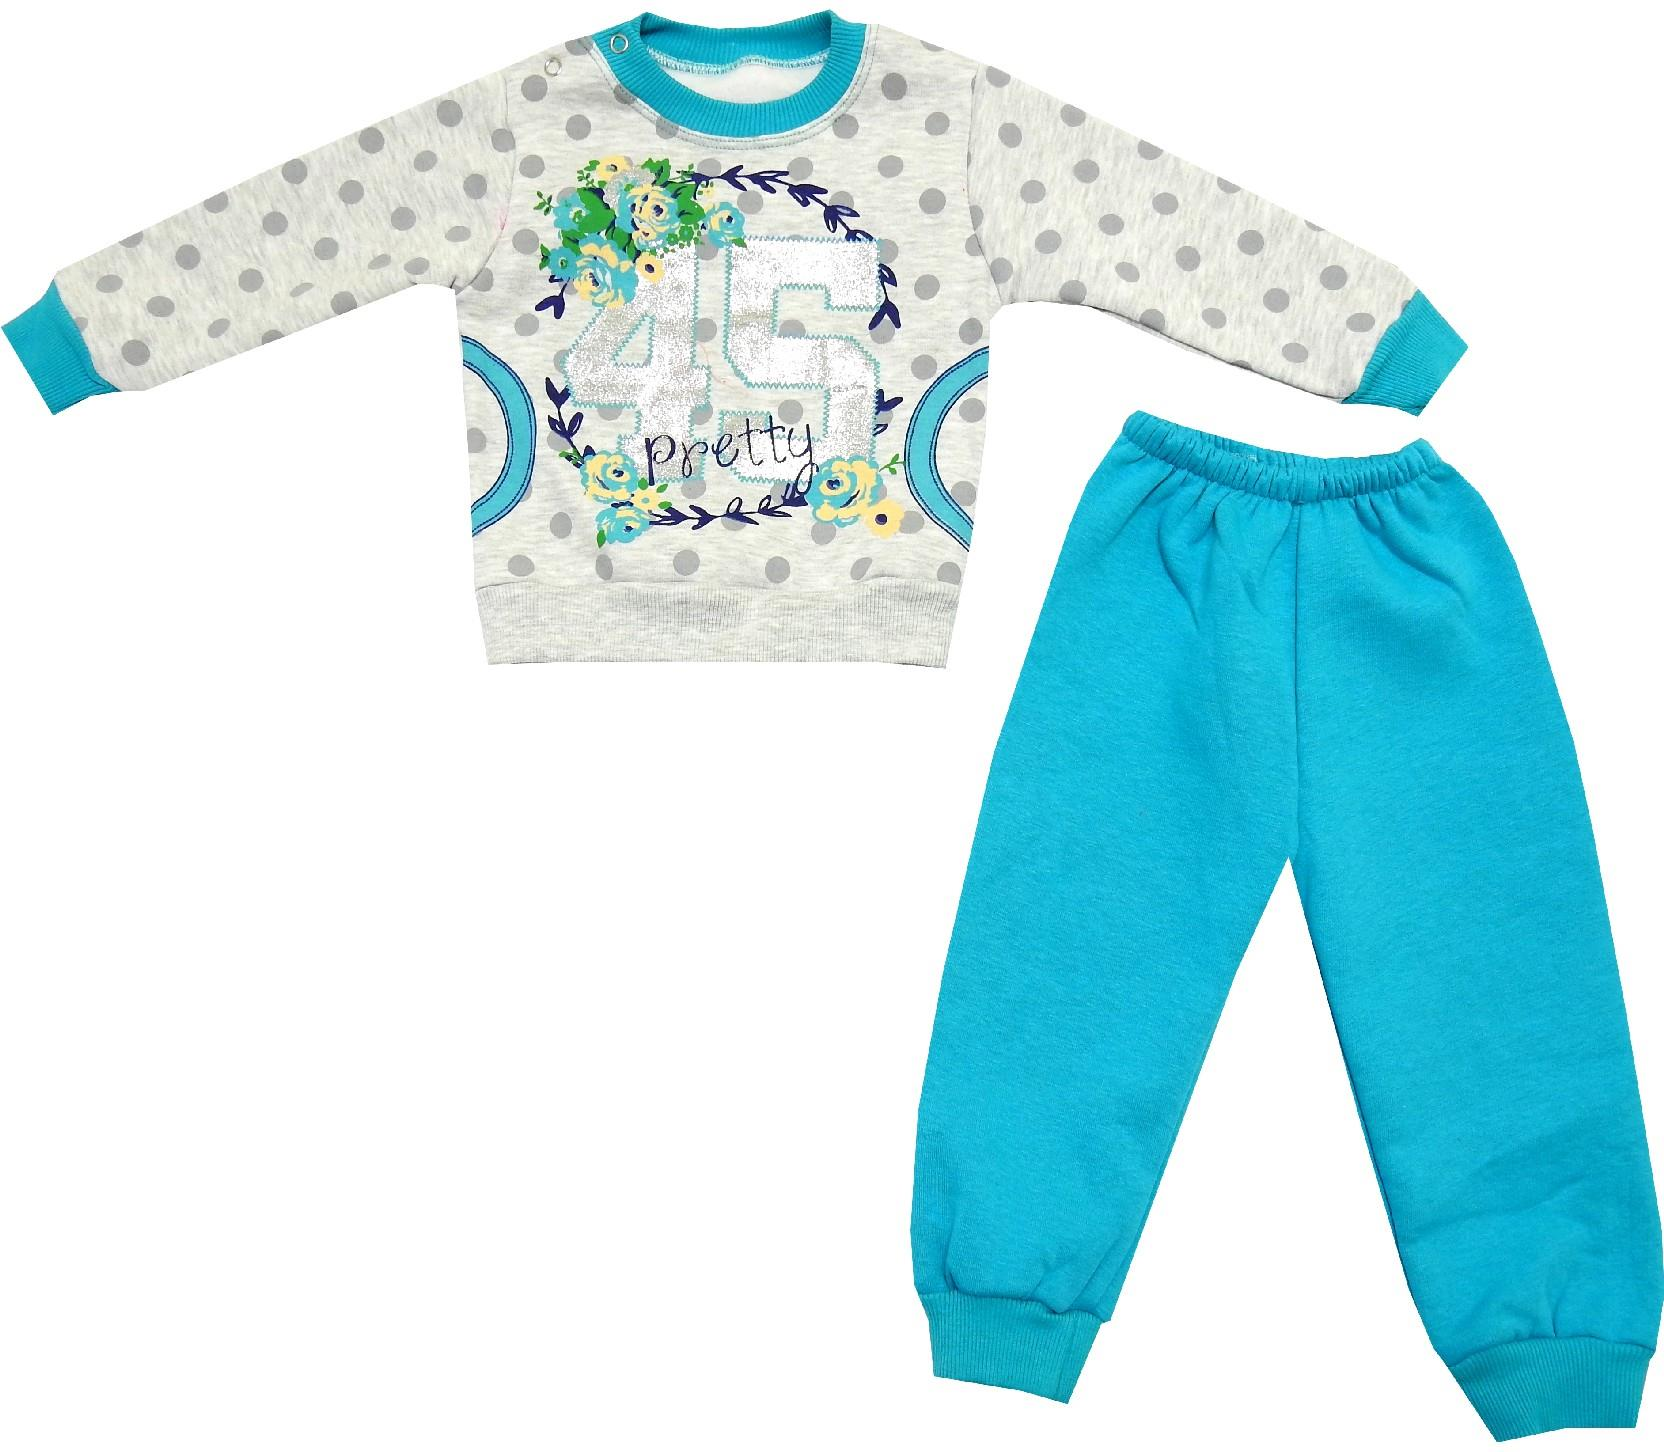 45 PRINTED FLOWER EMBROIDERED SWEATSHIRT AND TROUSER DOUBLE SET FOR GIRL (1-2-3 AGE)